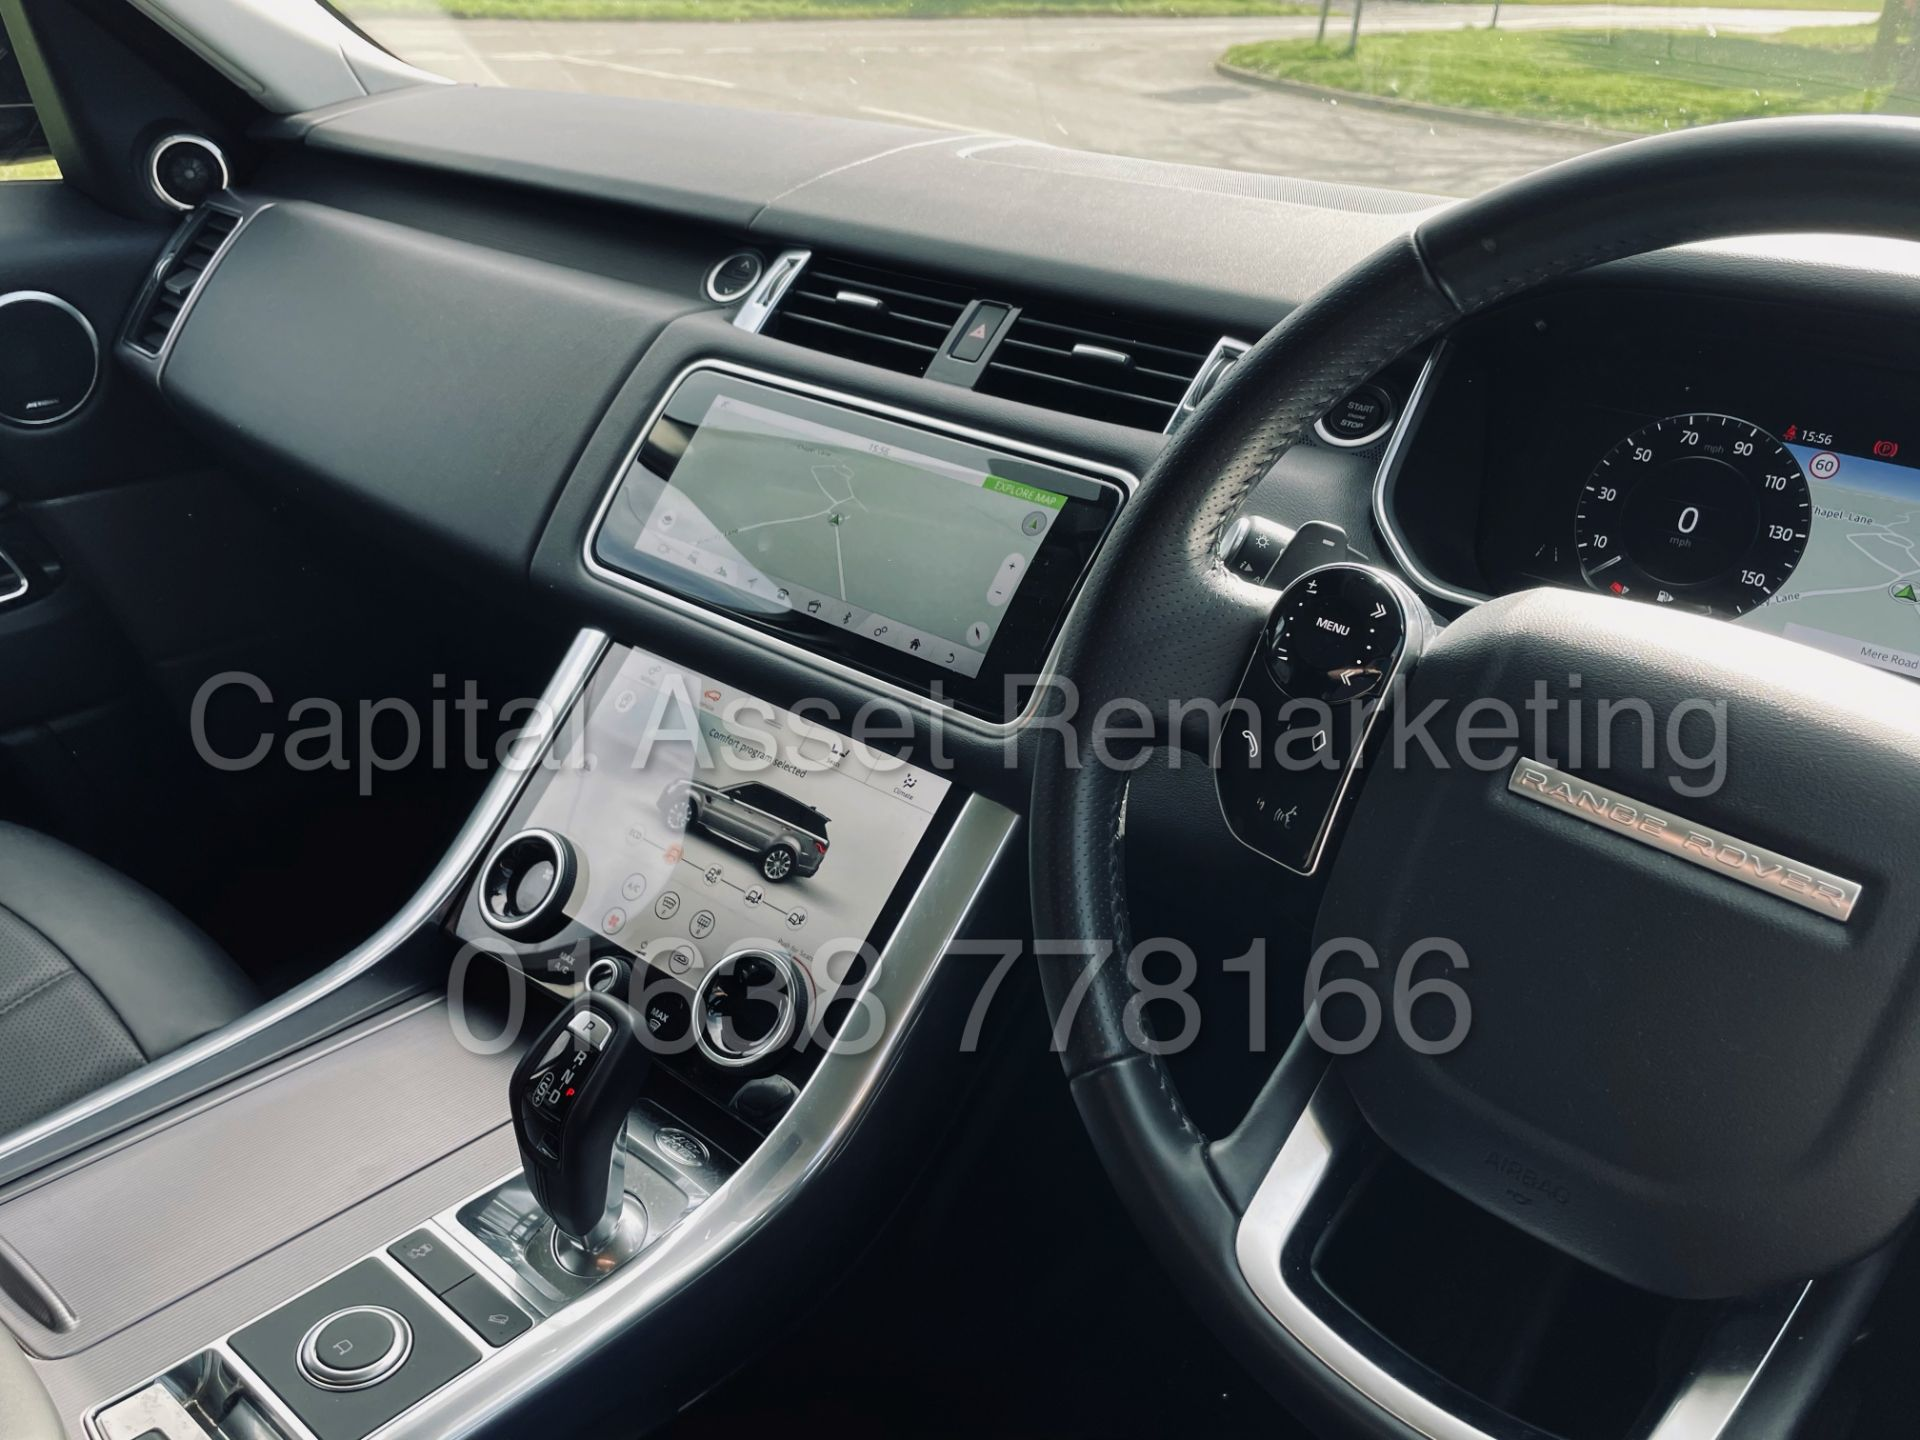 (On Sale) RANGE ROVER SPORT *HSE EDITION* SUV (2018 - NEW MODEL) '8 SPEED AUTO' *FULLY LOADED* - Image 43 of 55